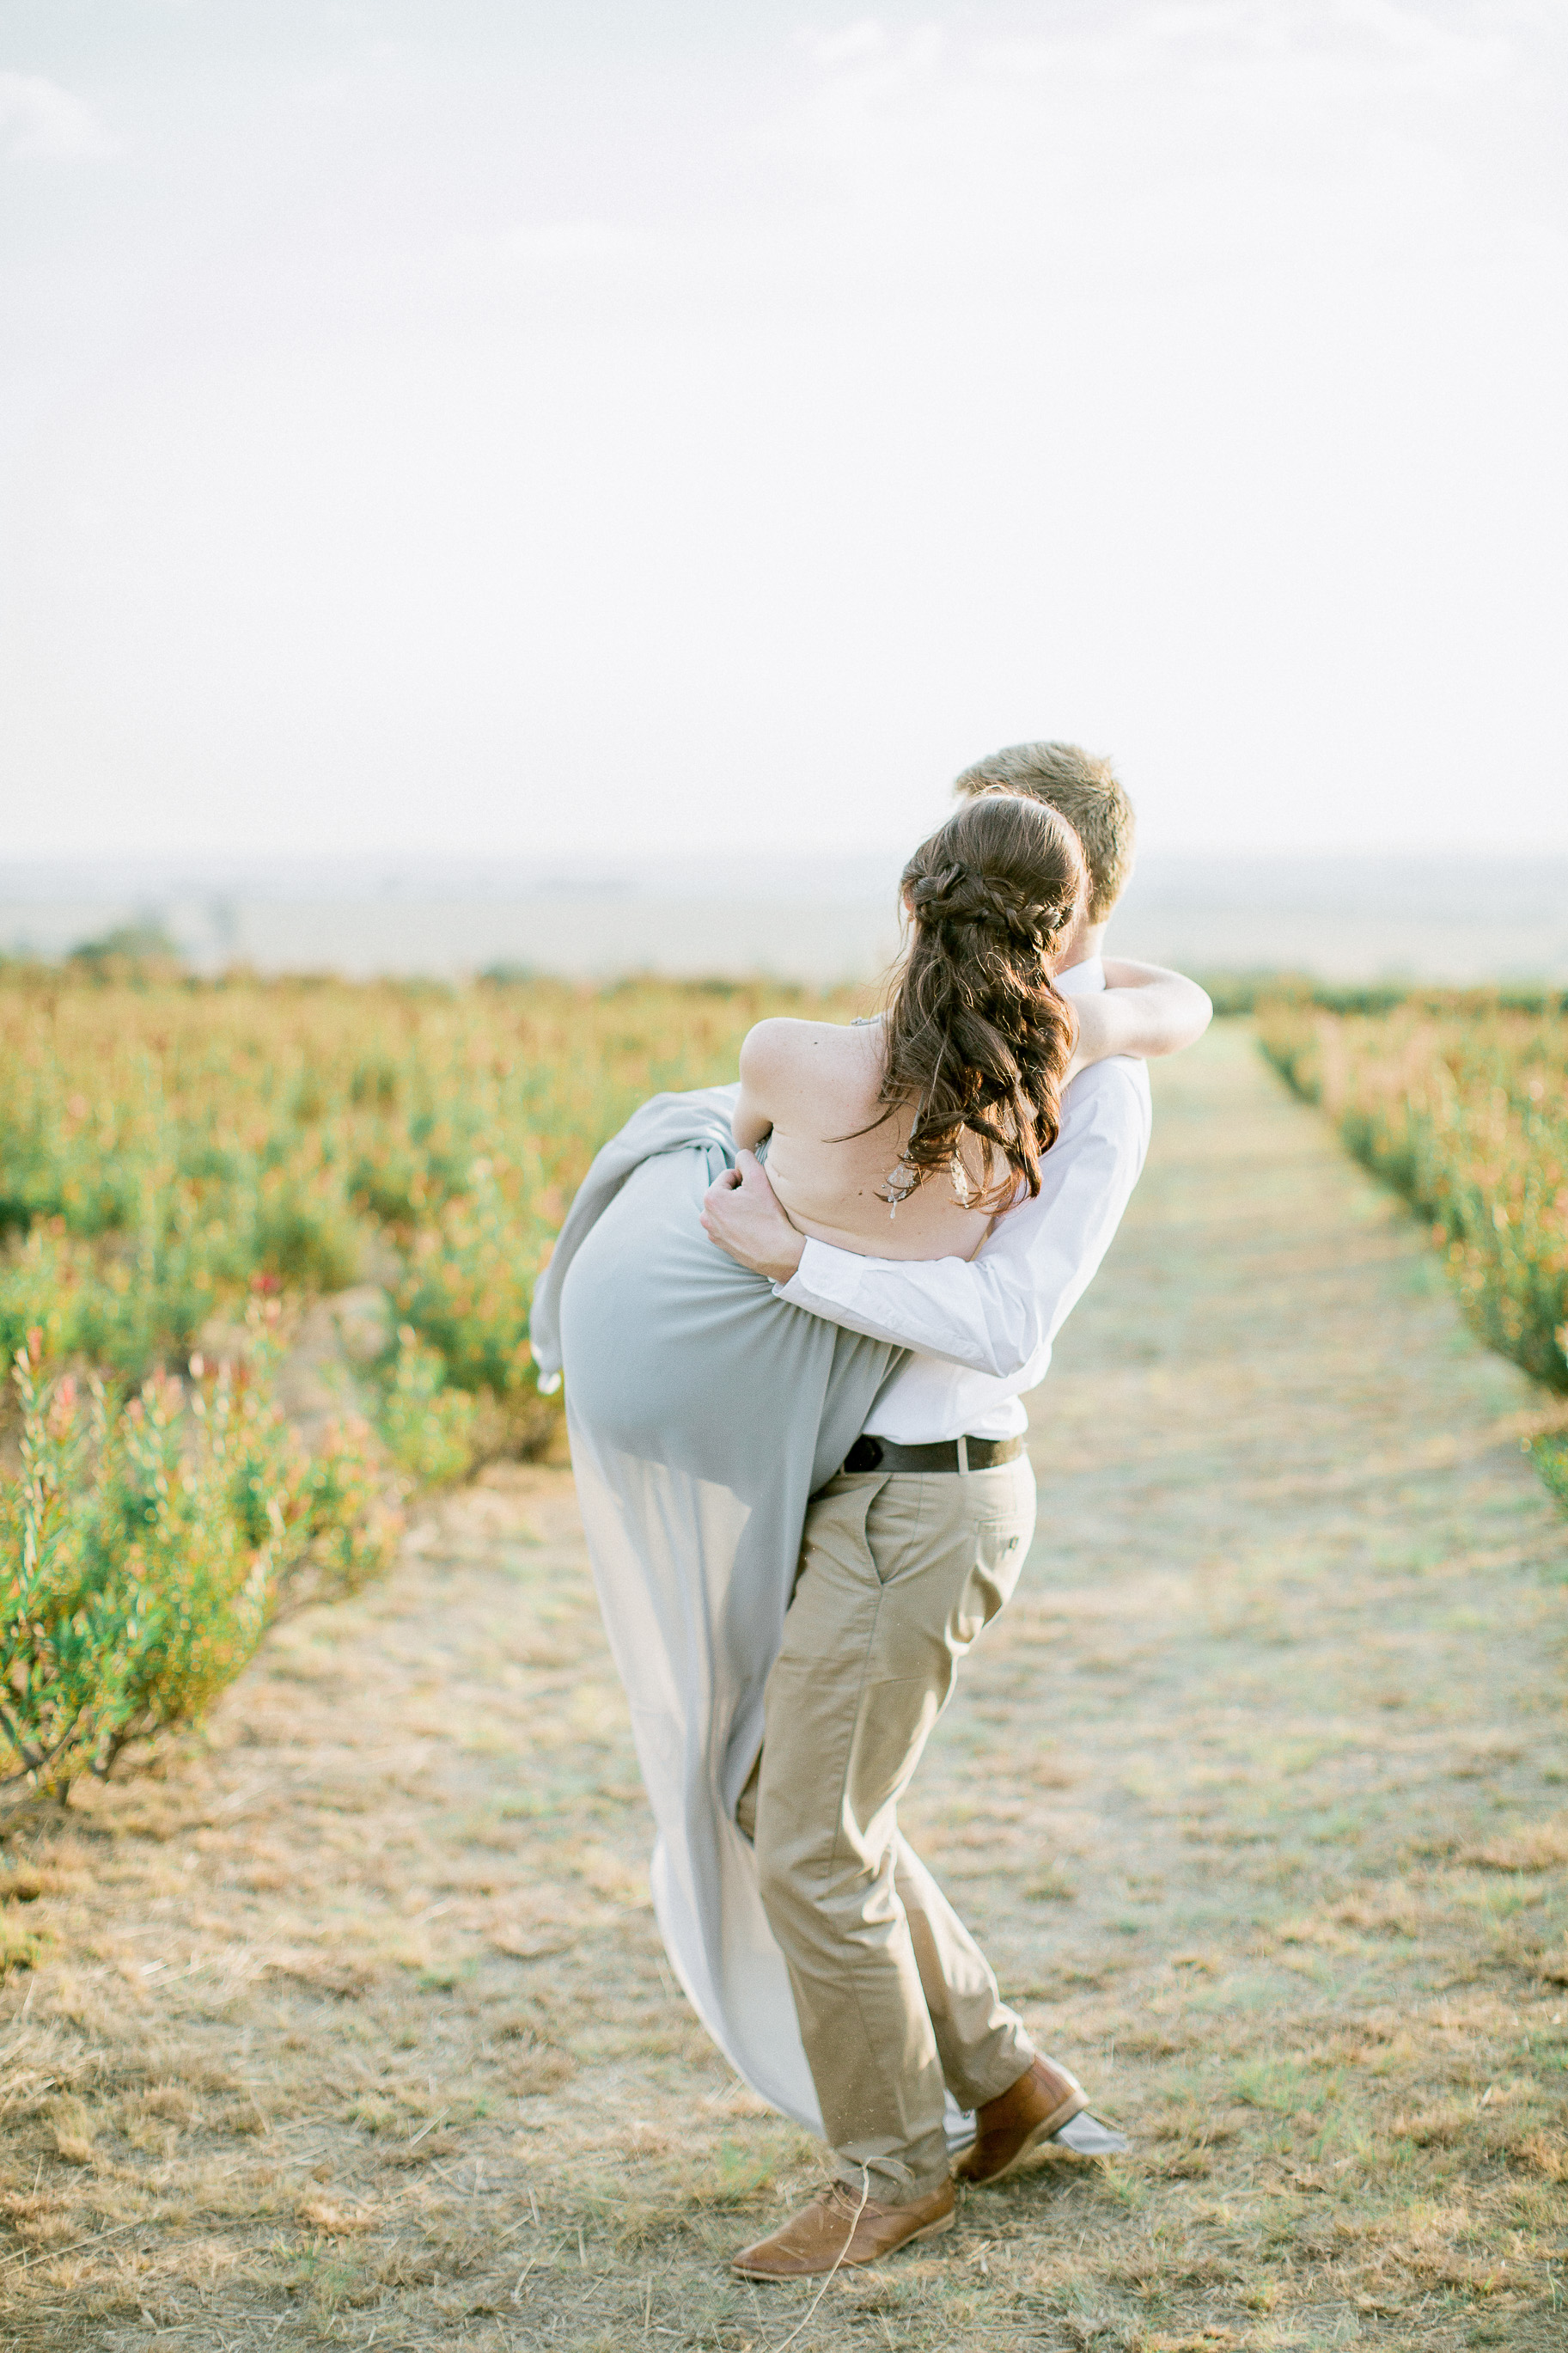 South africa wedding photographer clareece smit photography63.jpg